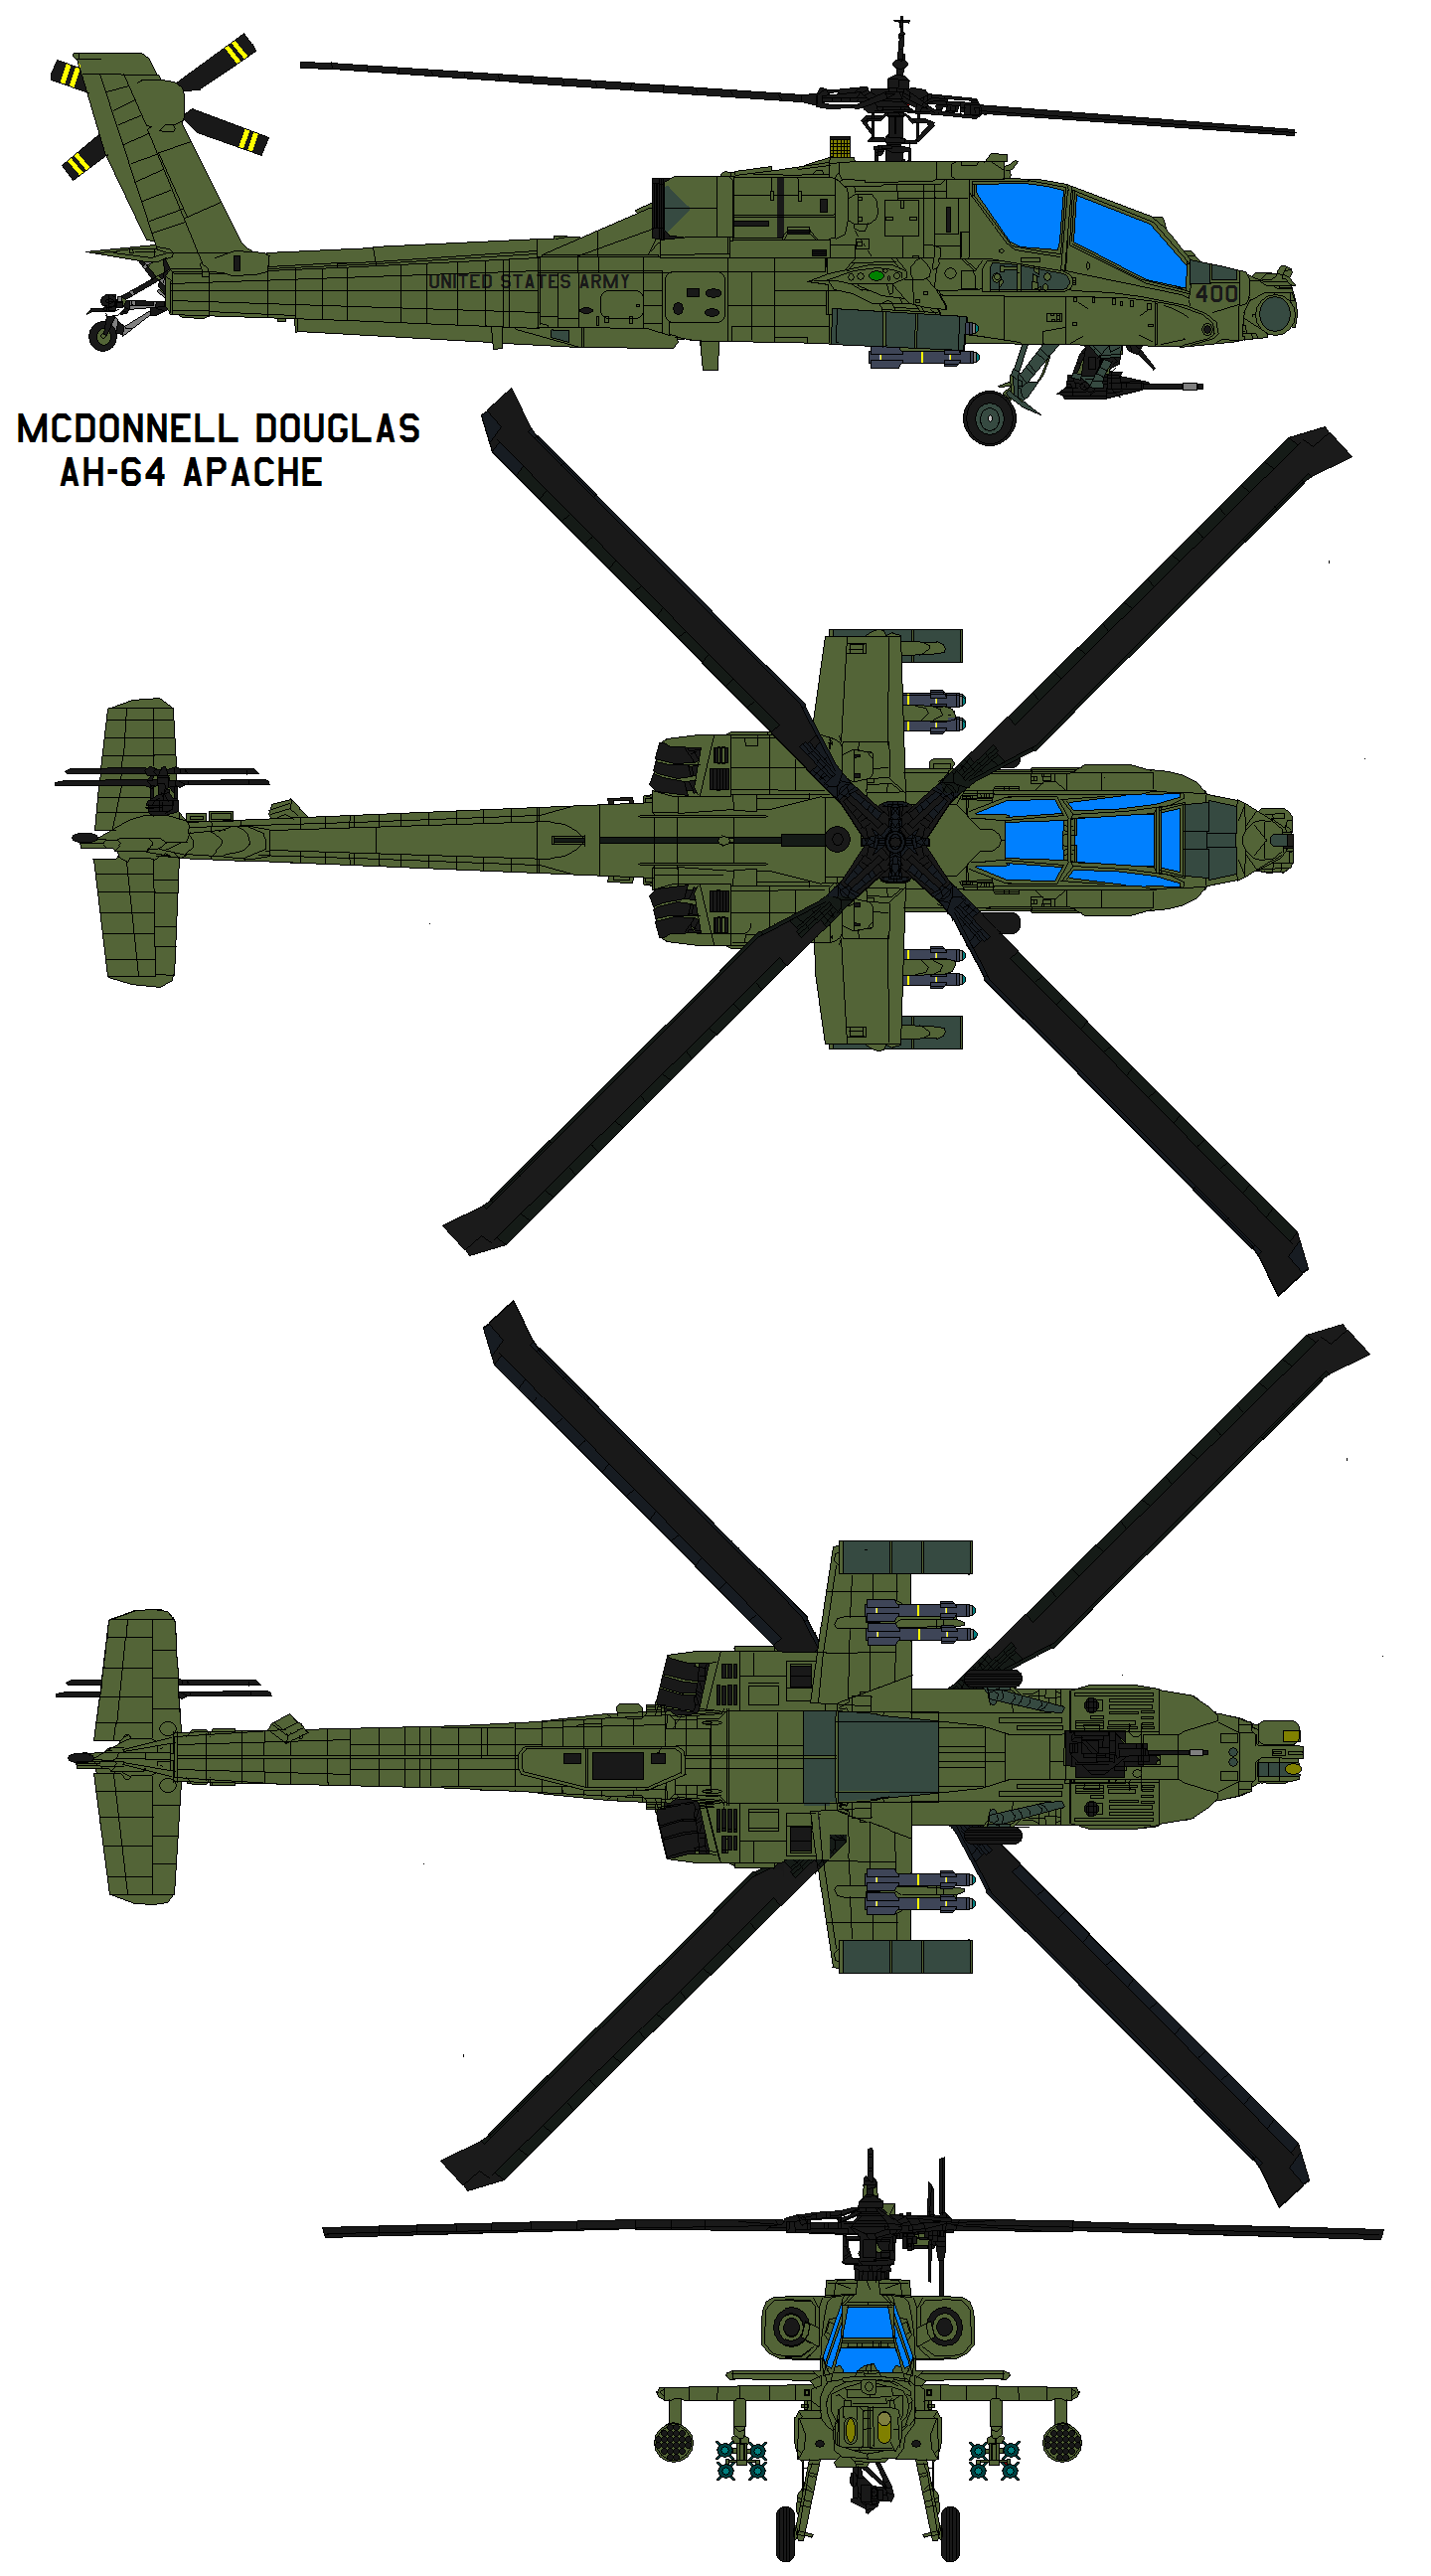 tandem rotor helicopter with Mcdonnell Douglas Ah 64 Apache 99192101 on Cornu helicopter besides Similar Helicopter 2 together with Mh 47 Chinook additionally Z19 additionally Los Mejores Helicopteros De Ataque Son Rusos.